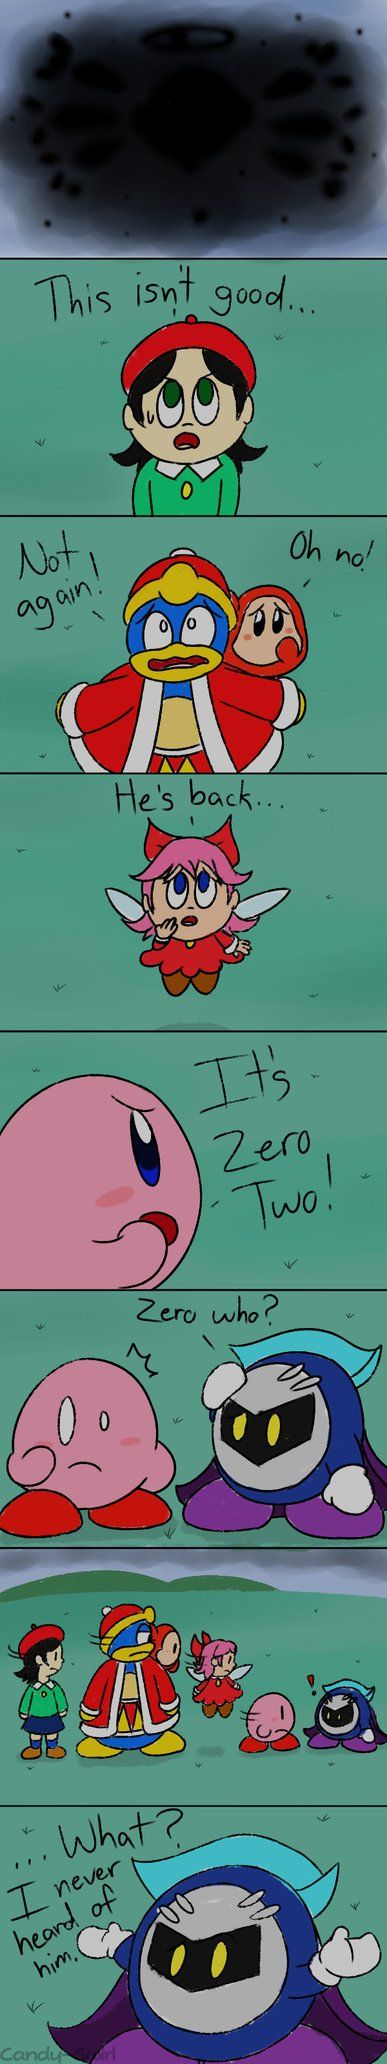 Hey guys. Did you know today is the day Kirby 64 first came out? Yesterday was also the day Kirby's Adventure first came out. Whoa, a lot of Kirby games were released in March huh? So anyway, this ...